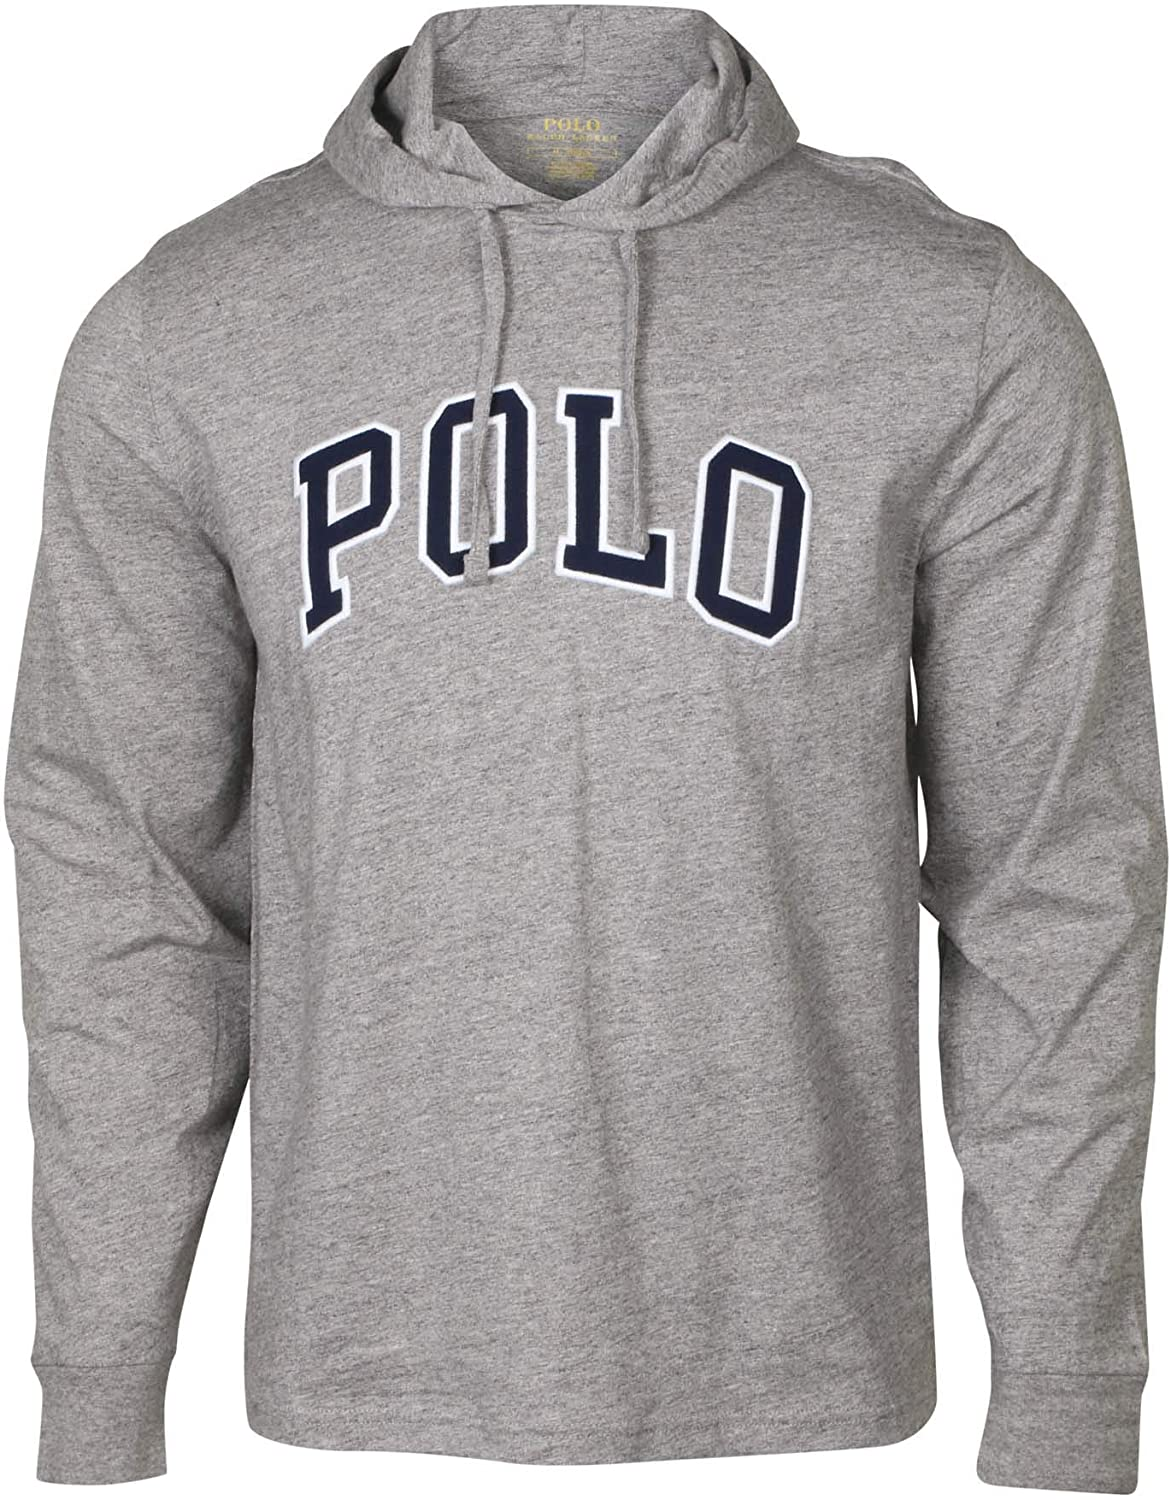 Polo Ralph Lauren Men's Big and Tall Estate Rib Half-Zip Pullover sweatshirt